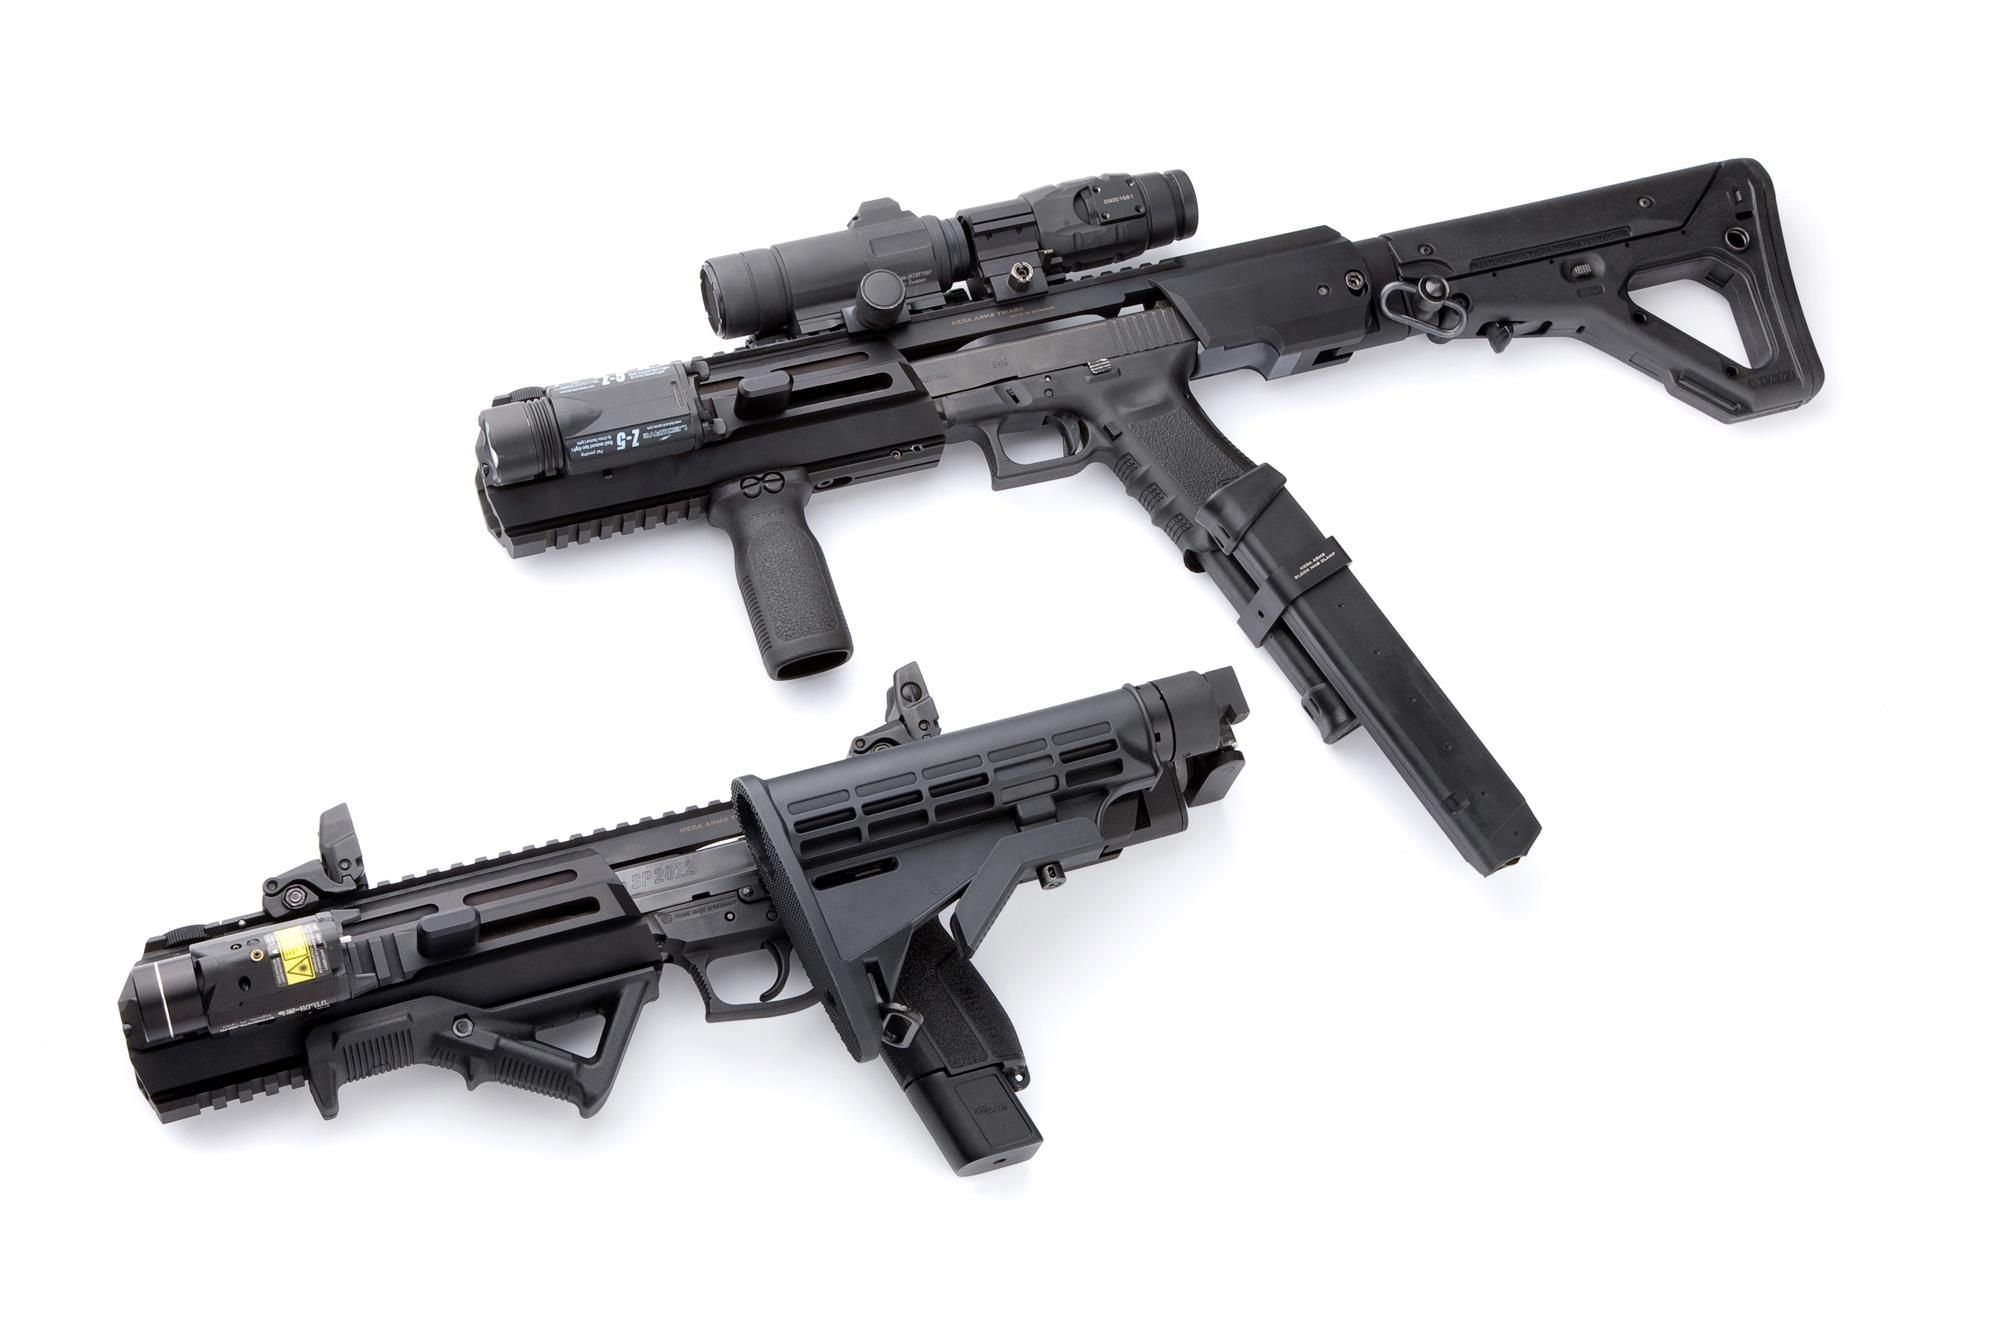 Glock Inc  Pistol Conversion Available For: - Glock 17 / 22